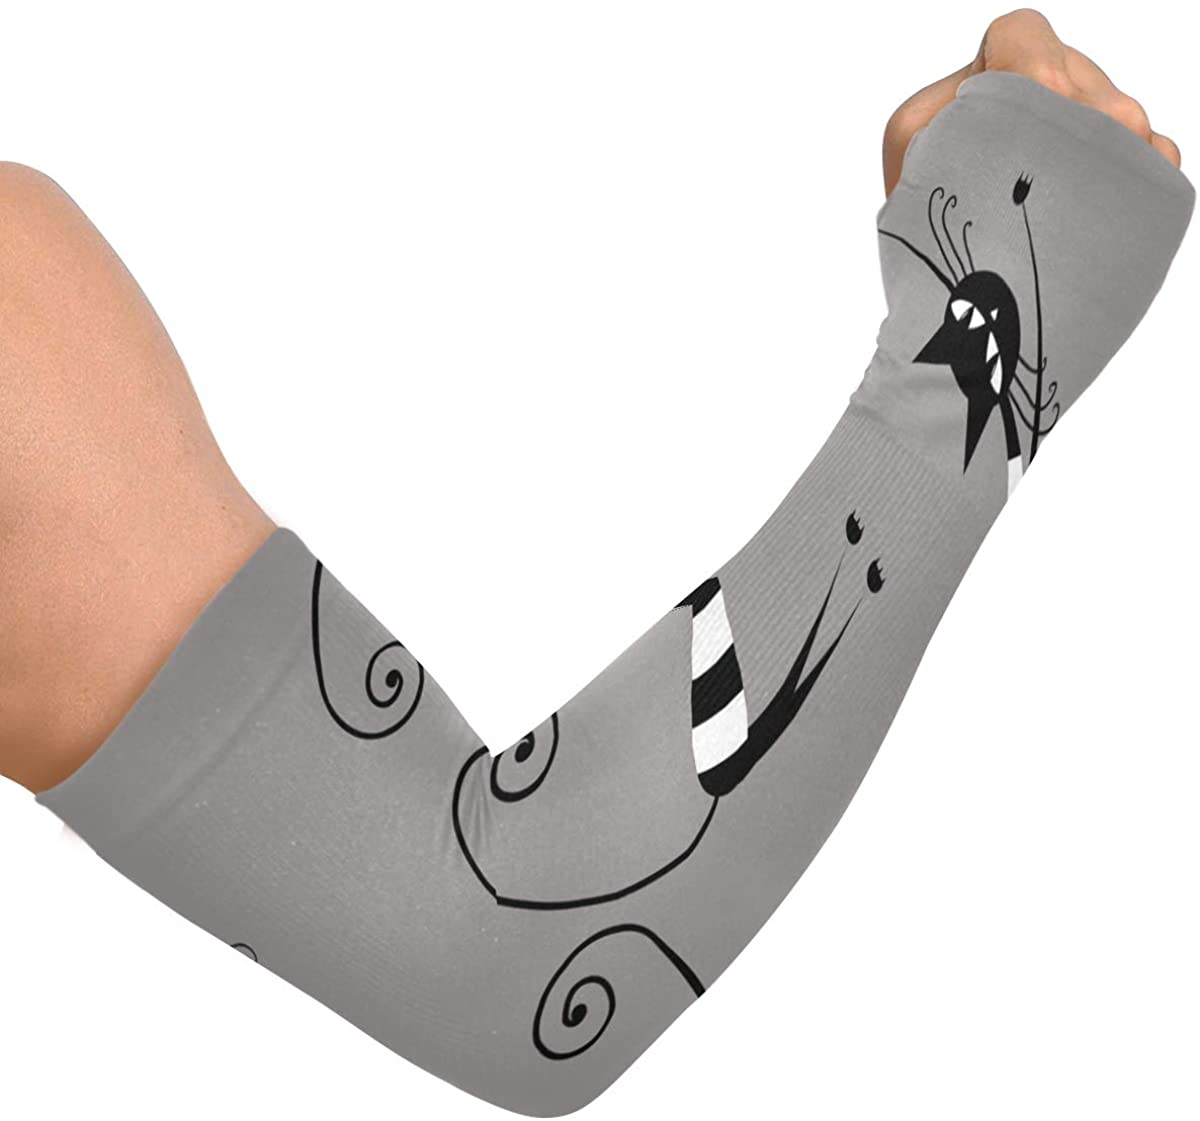 Cooling Arm Sleeves Anti-Slip Amusing Cat Unisex Arm Sleeves for Bike Hiking Golf Cycle Drive Outside Activities